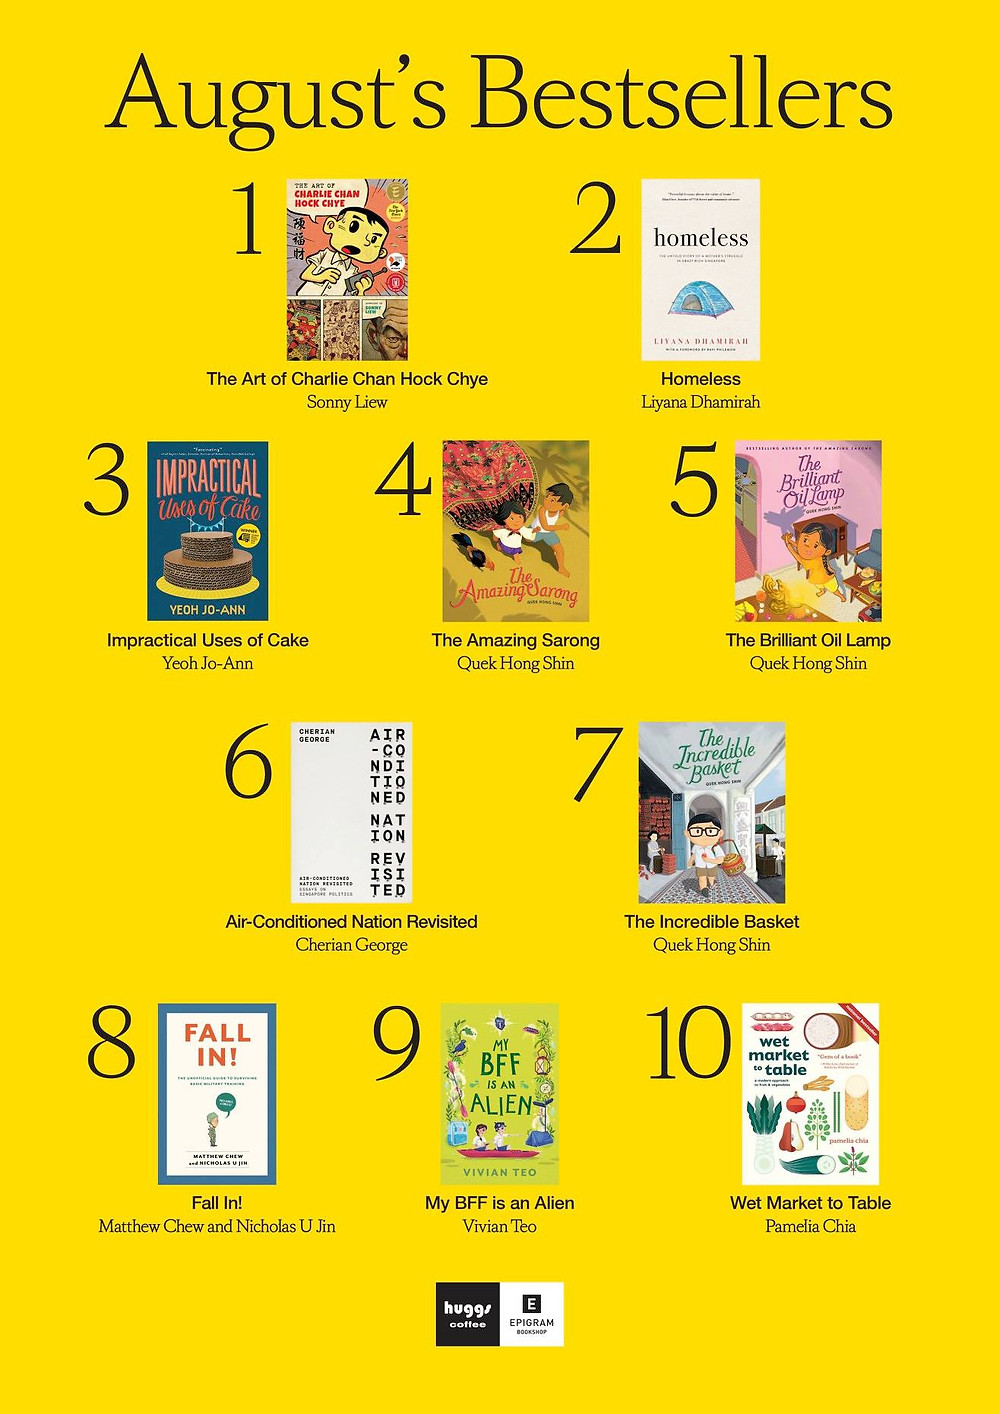 Huggs Epigram bestsellers My BFF is an Alien Singapore Singlit children middle grade books